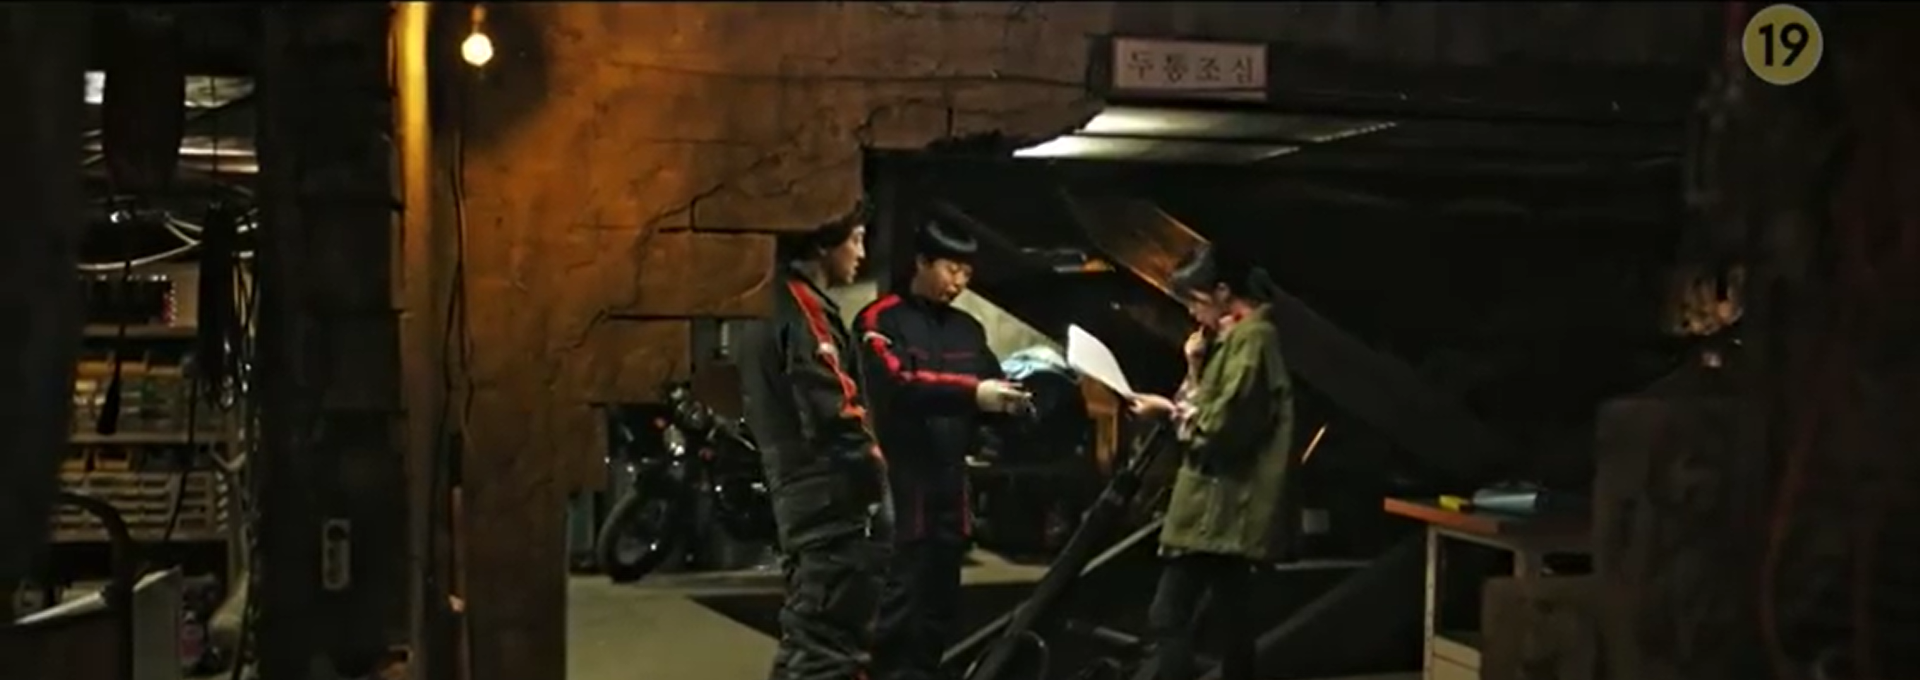 taxi driver korean drama review - rainbow deluxe taxi team